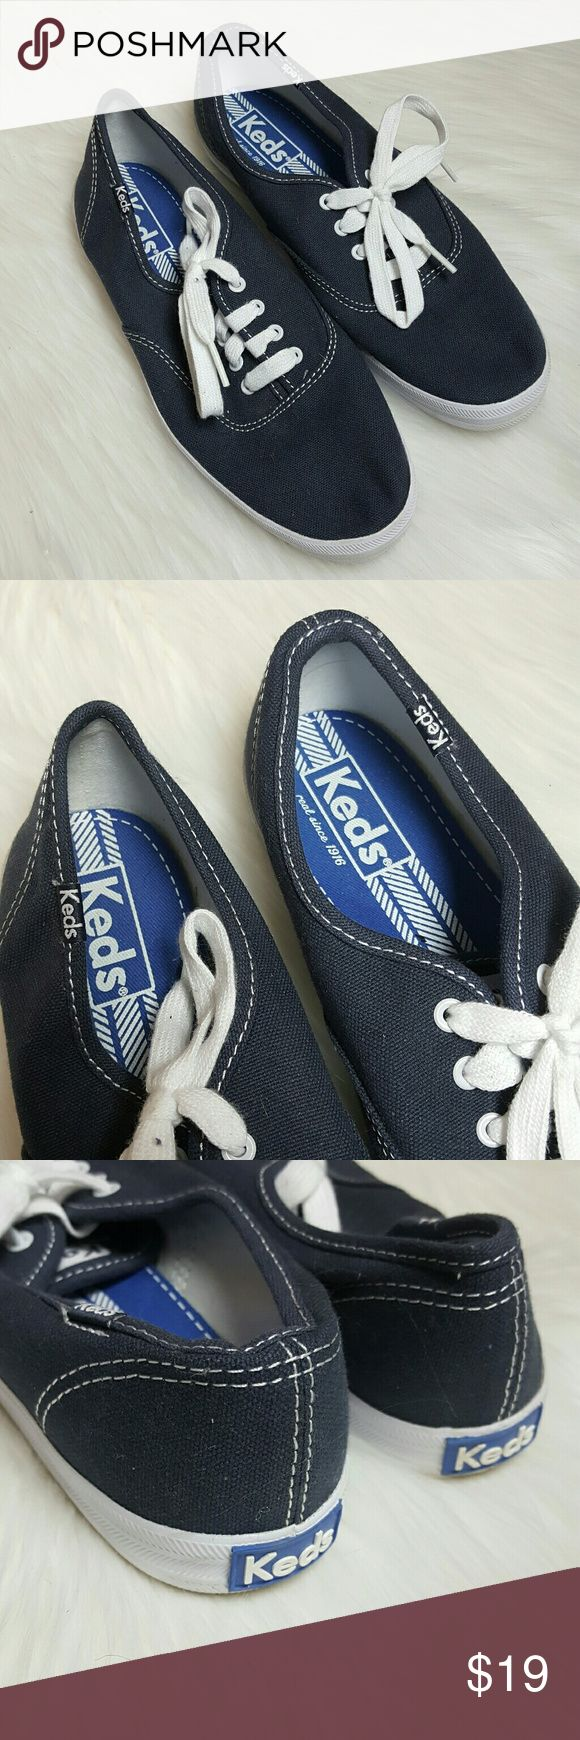 Keds Champion Navy Blue Sneakers Keds Champion Womens Sneakers Size 7 Color Navy Blue Preowned in excellent condition Keds Shoes Sneakers